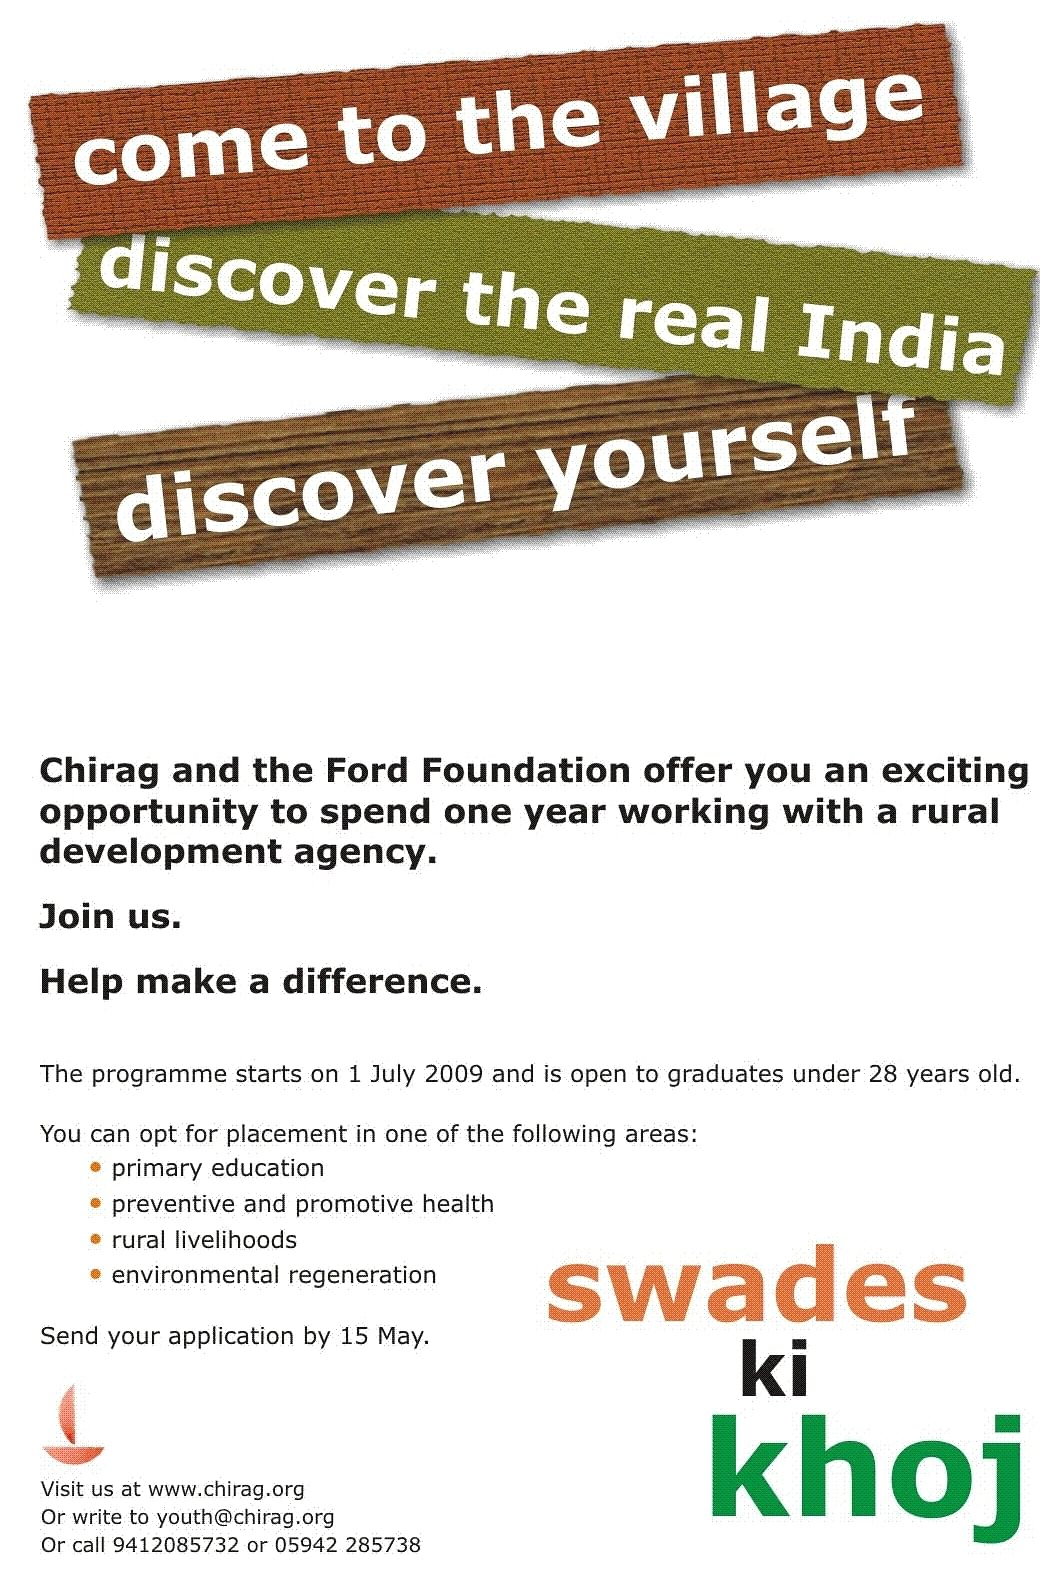 Chirag to offer 1-year fellowship in rural India